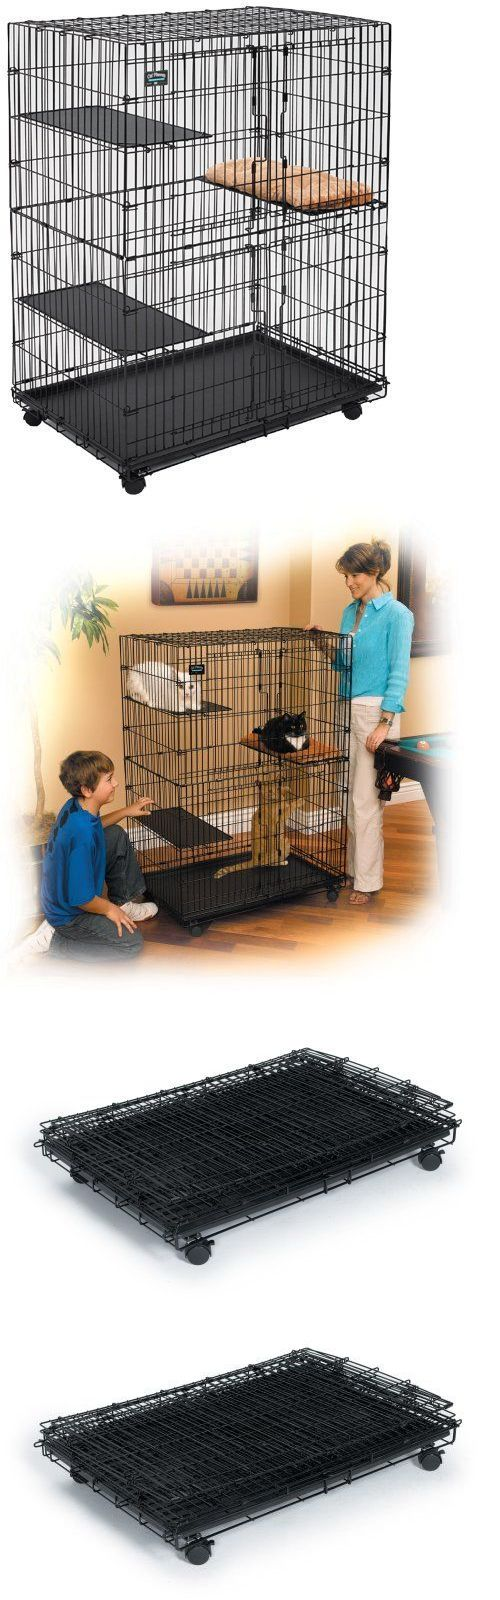 Carriers and Crates 116362: Cat Playpen Cage Pet Dog Pen Comfortable Wheels Large Swing Open Front Midwest N BUY IT NOW ONLY: $135.99